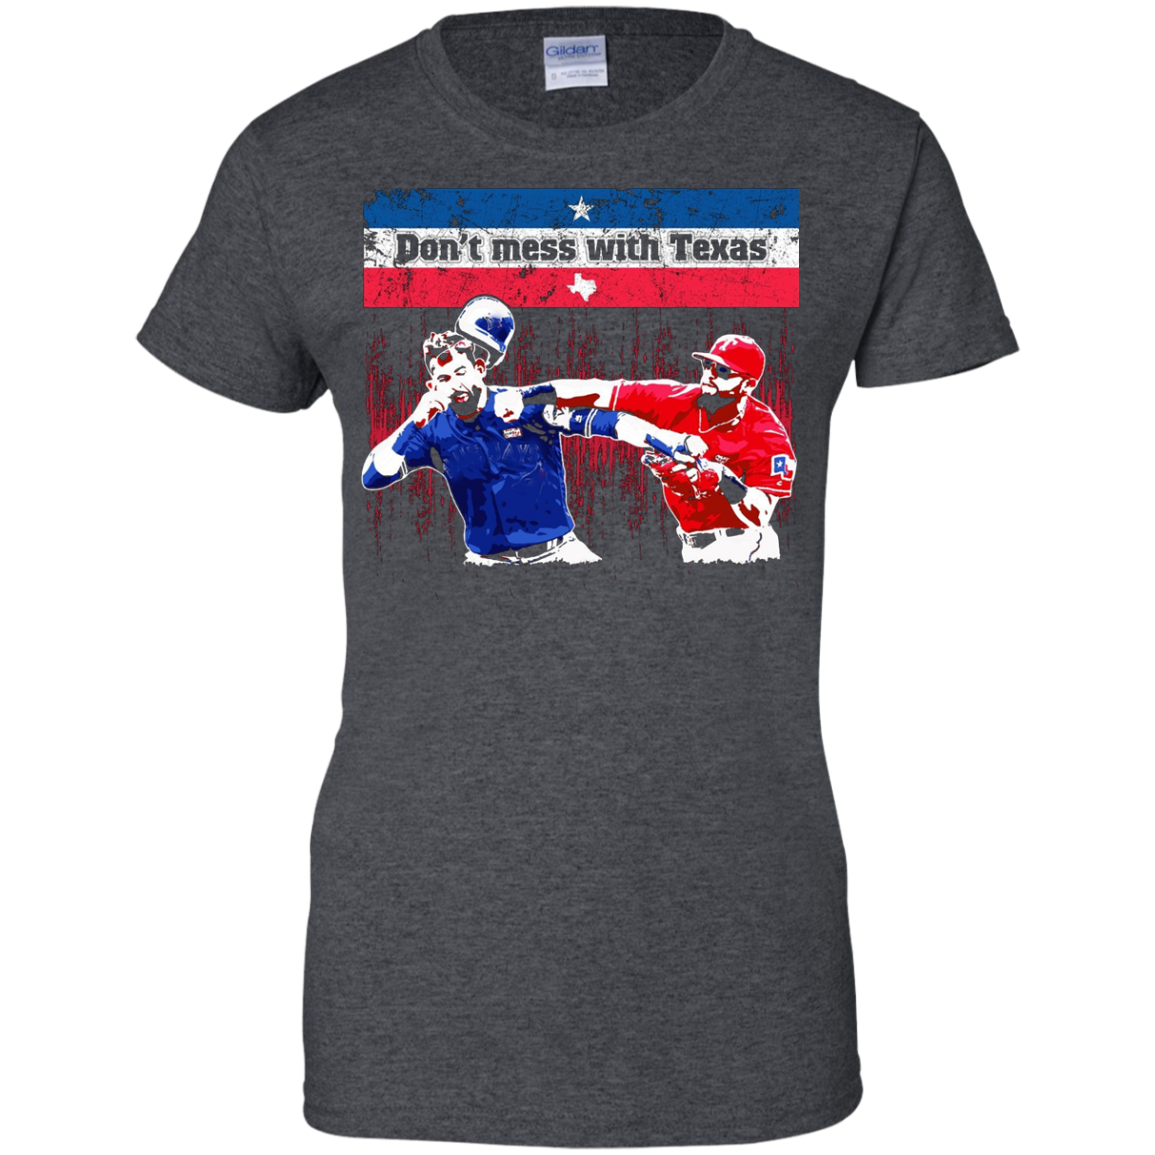 Don't mess with Texas great funny baseball punch t-shirt